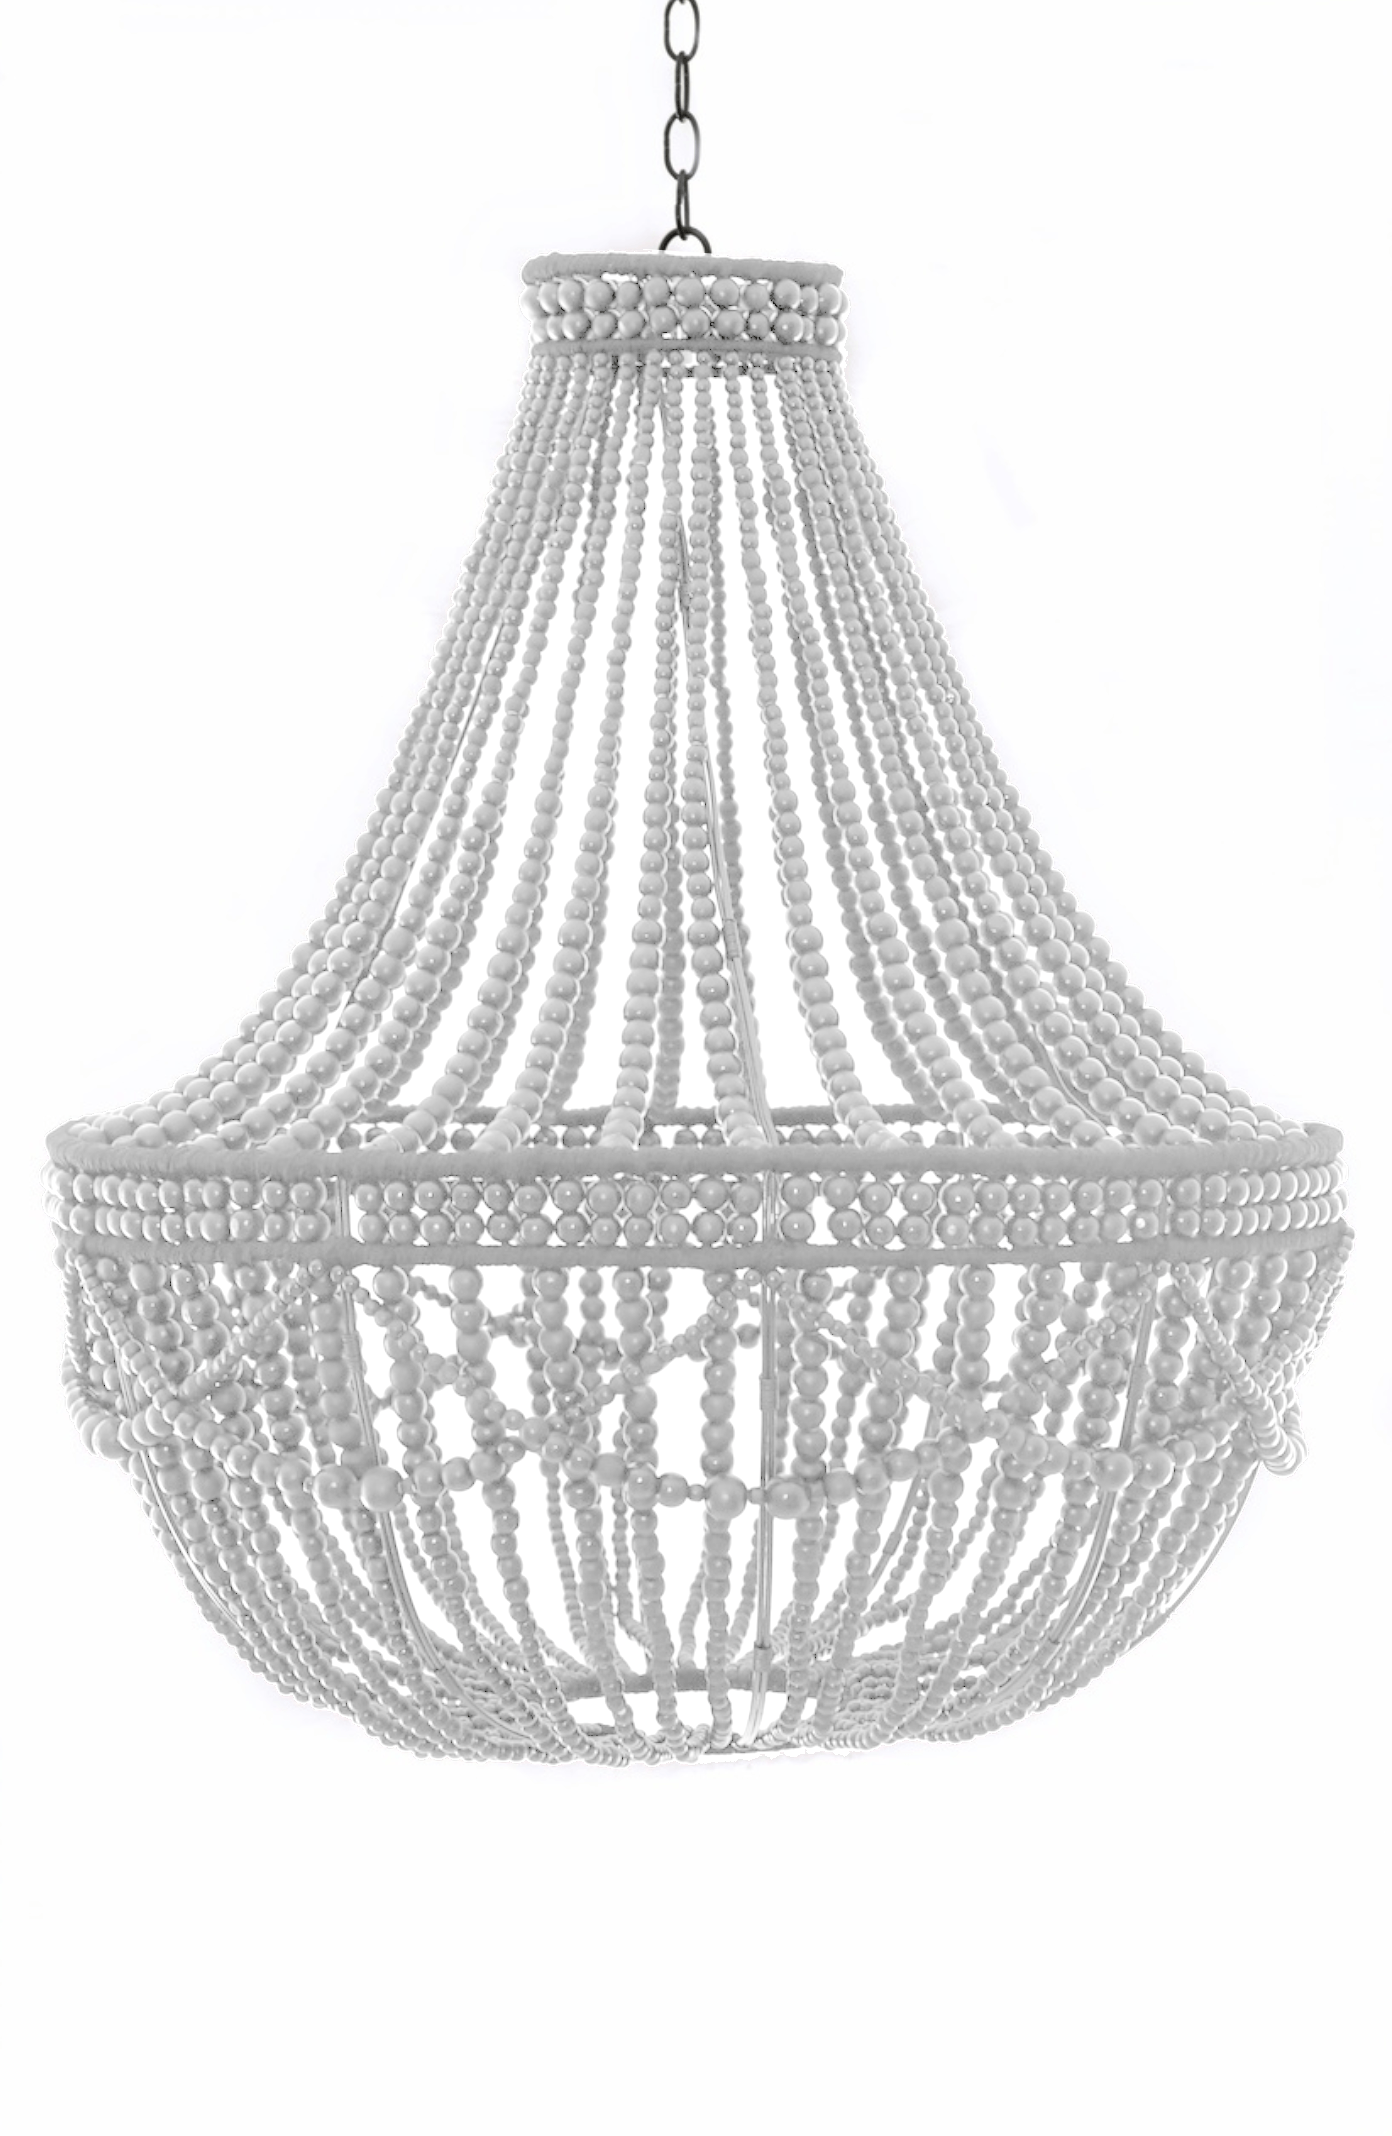 The Egret  Chandelier